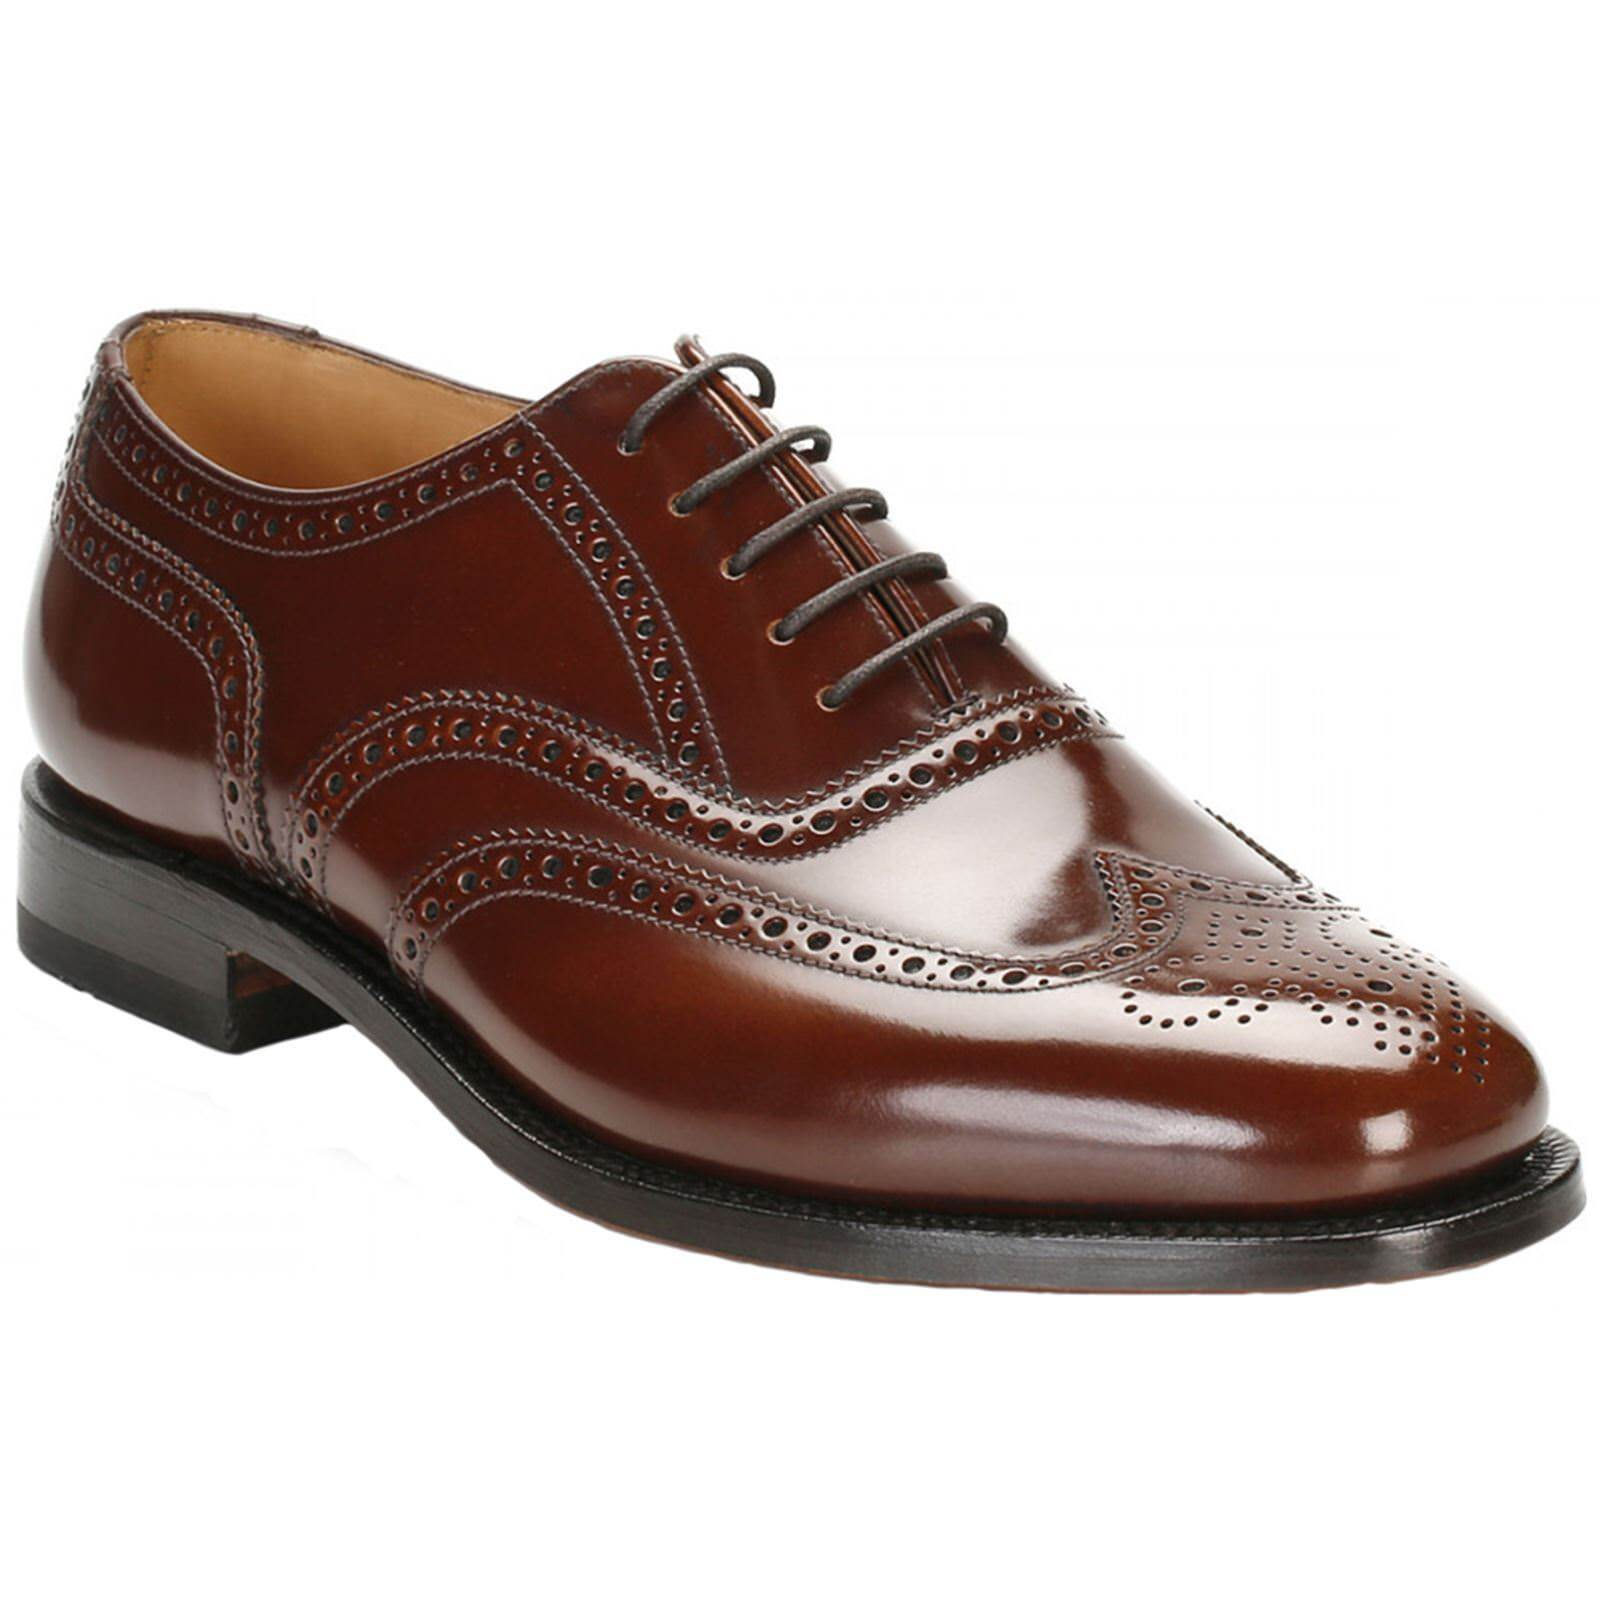 Loake 202 Brown Mens Leather Lace-up Brogues Wingtip Oxford shoes